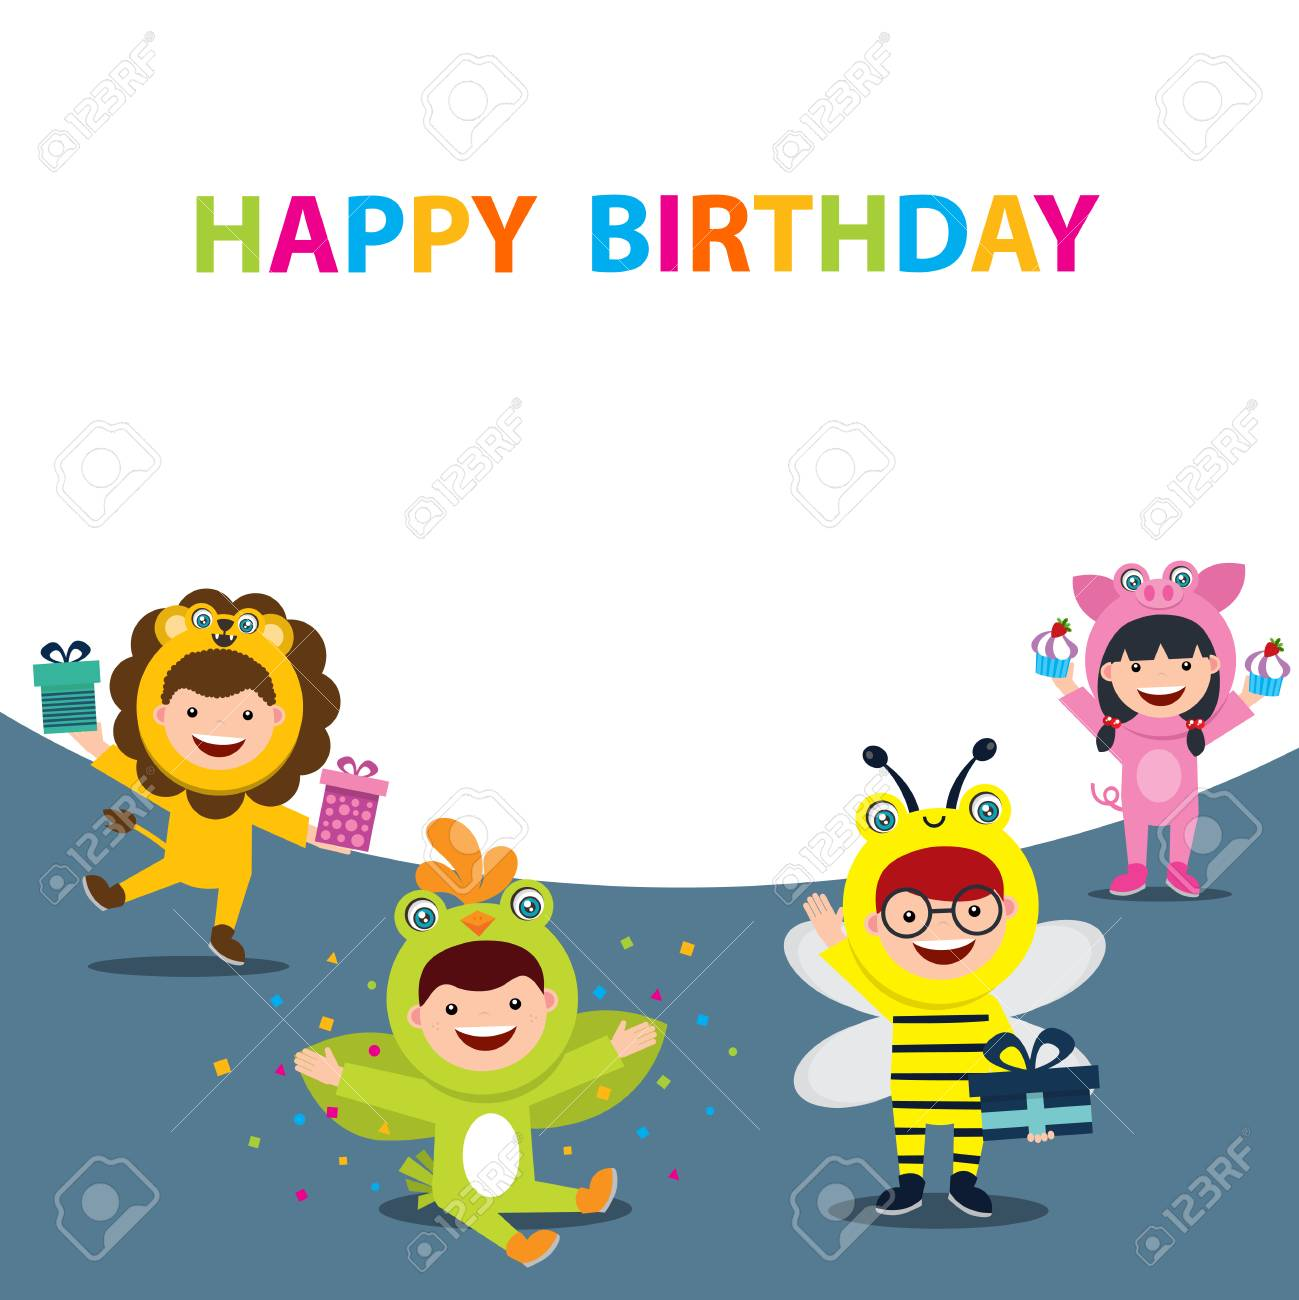 Incredible Happy Birthday Card With Kids In Animal Costume Royalty Free Funny Birthday Cards Online Fluifree Goldxyz